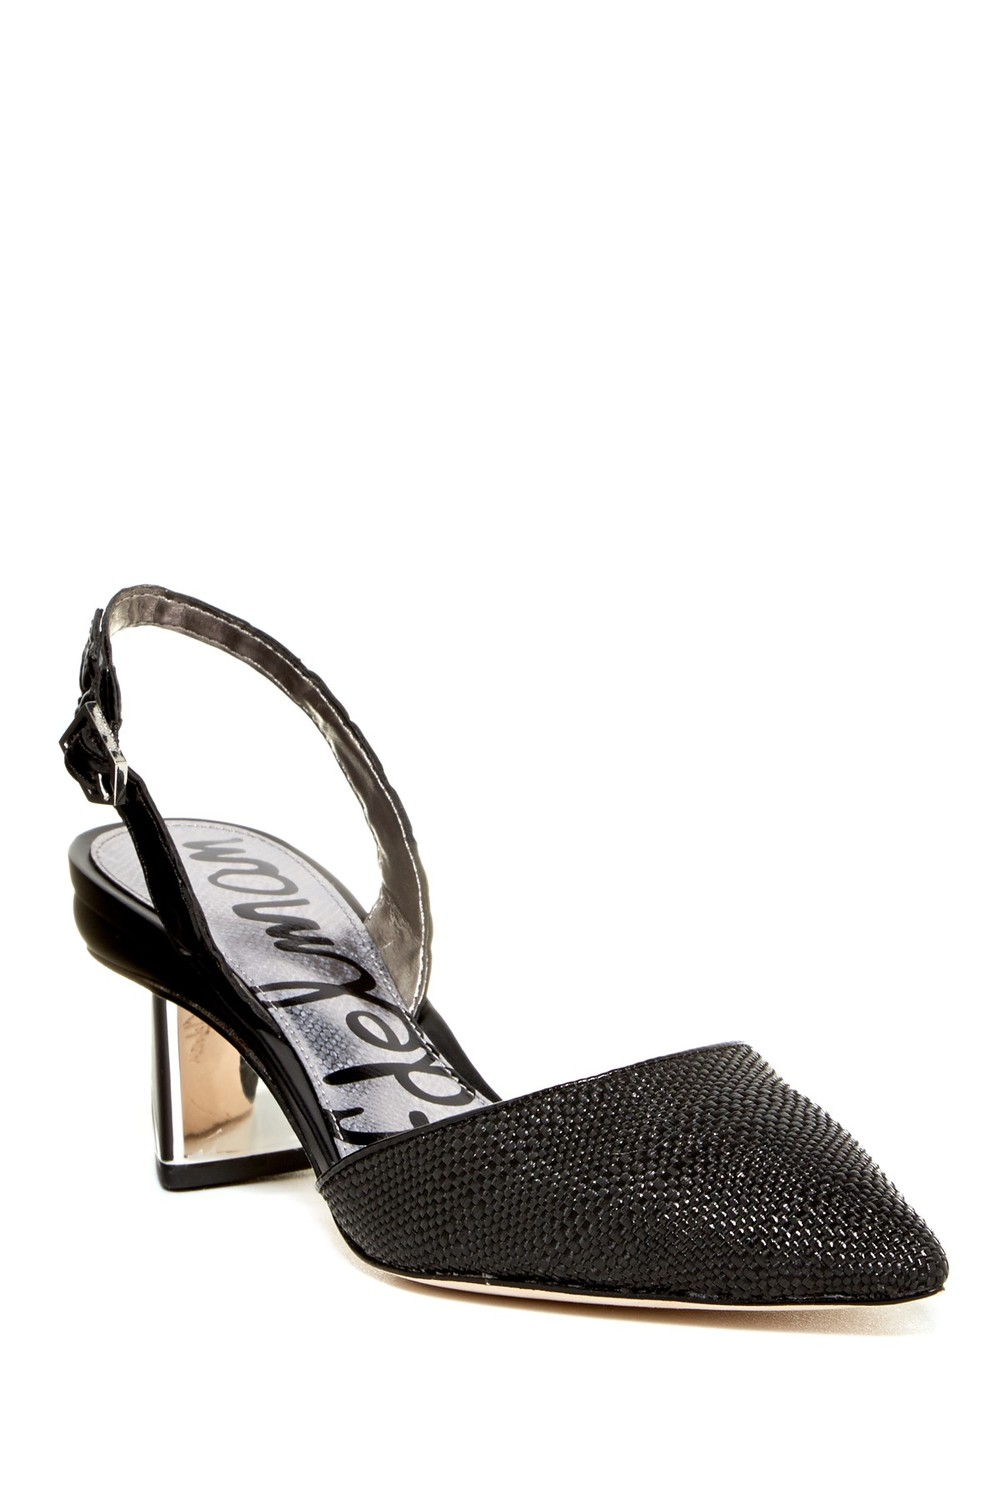 Sam Edelman Carol Croc Embossed Slingback Pump. Nordstrom Rack. Was: $130 Now: $79.